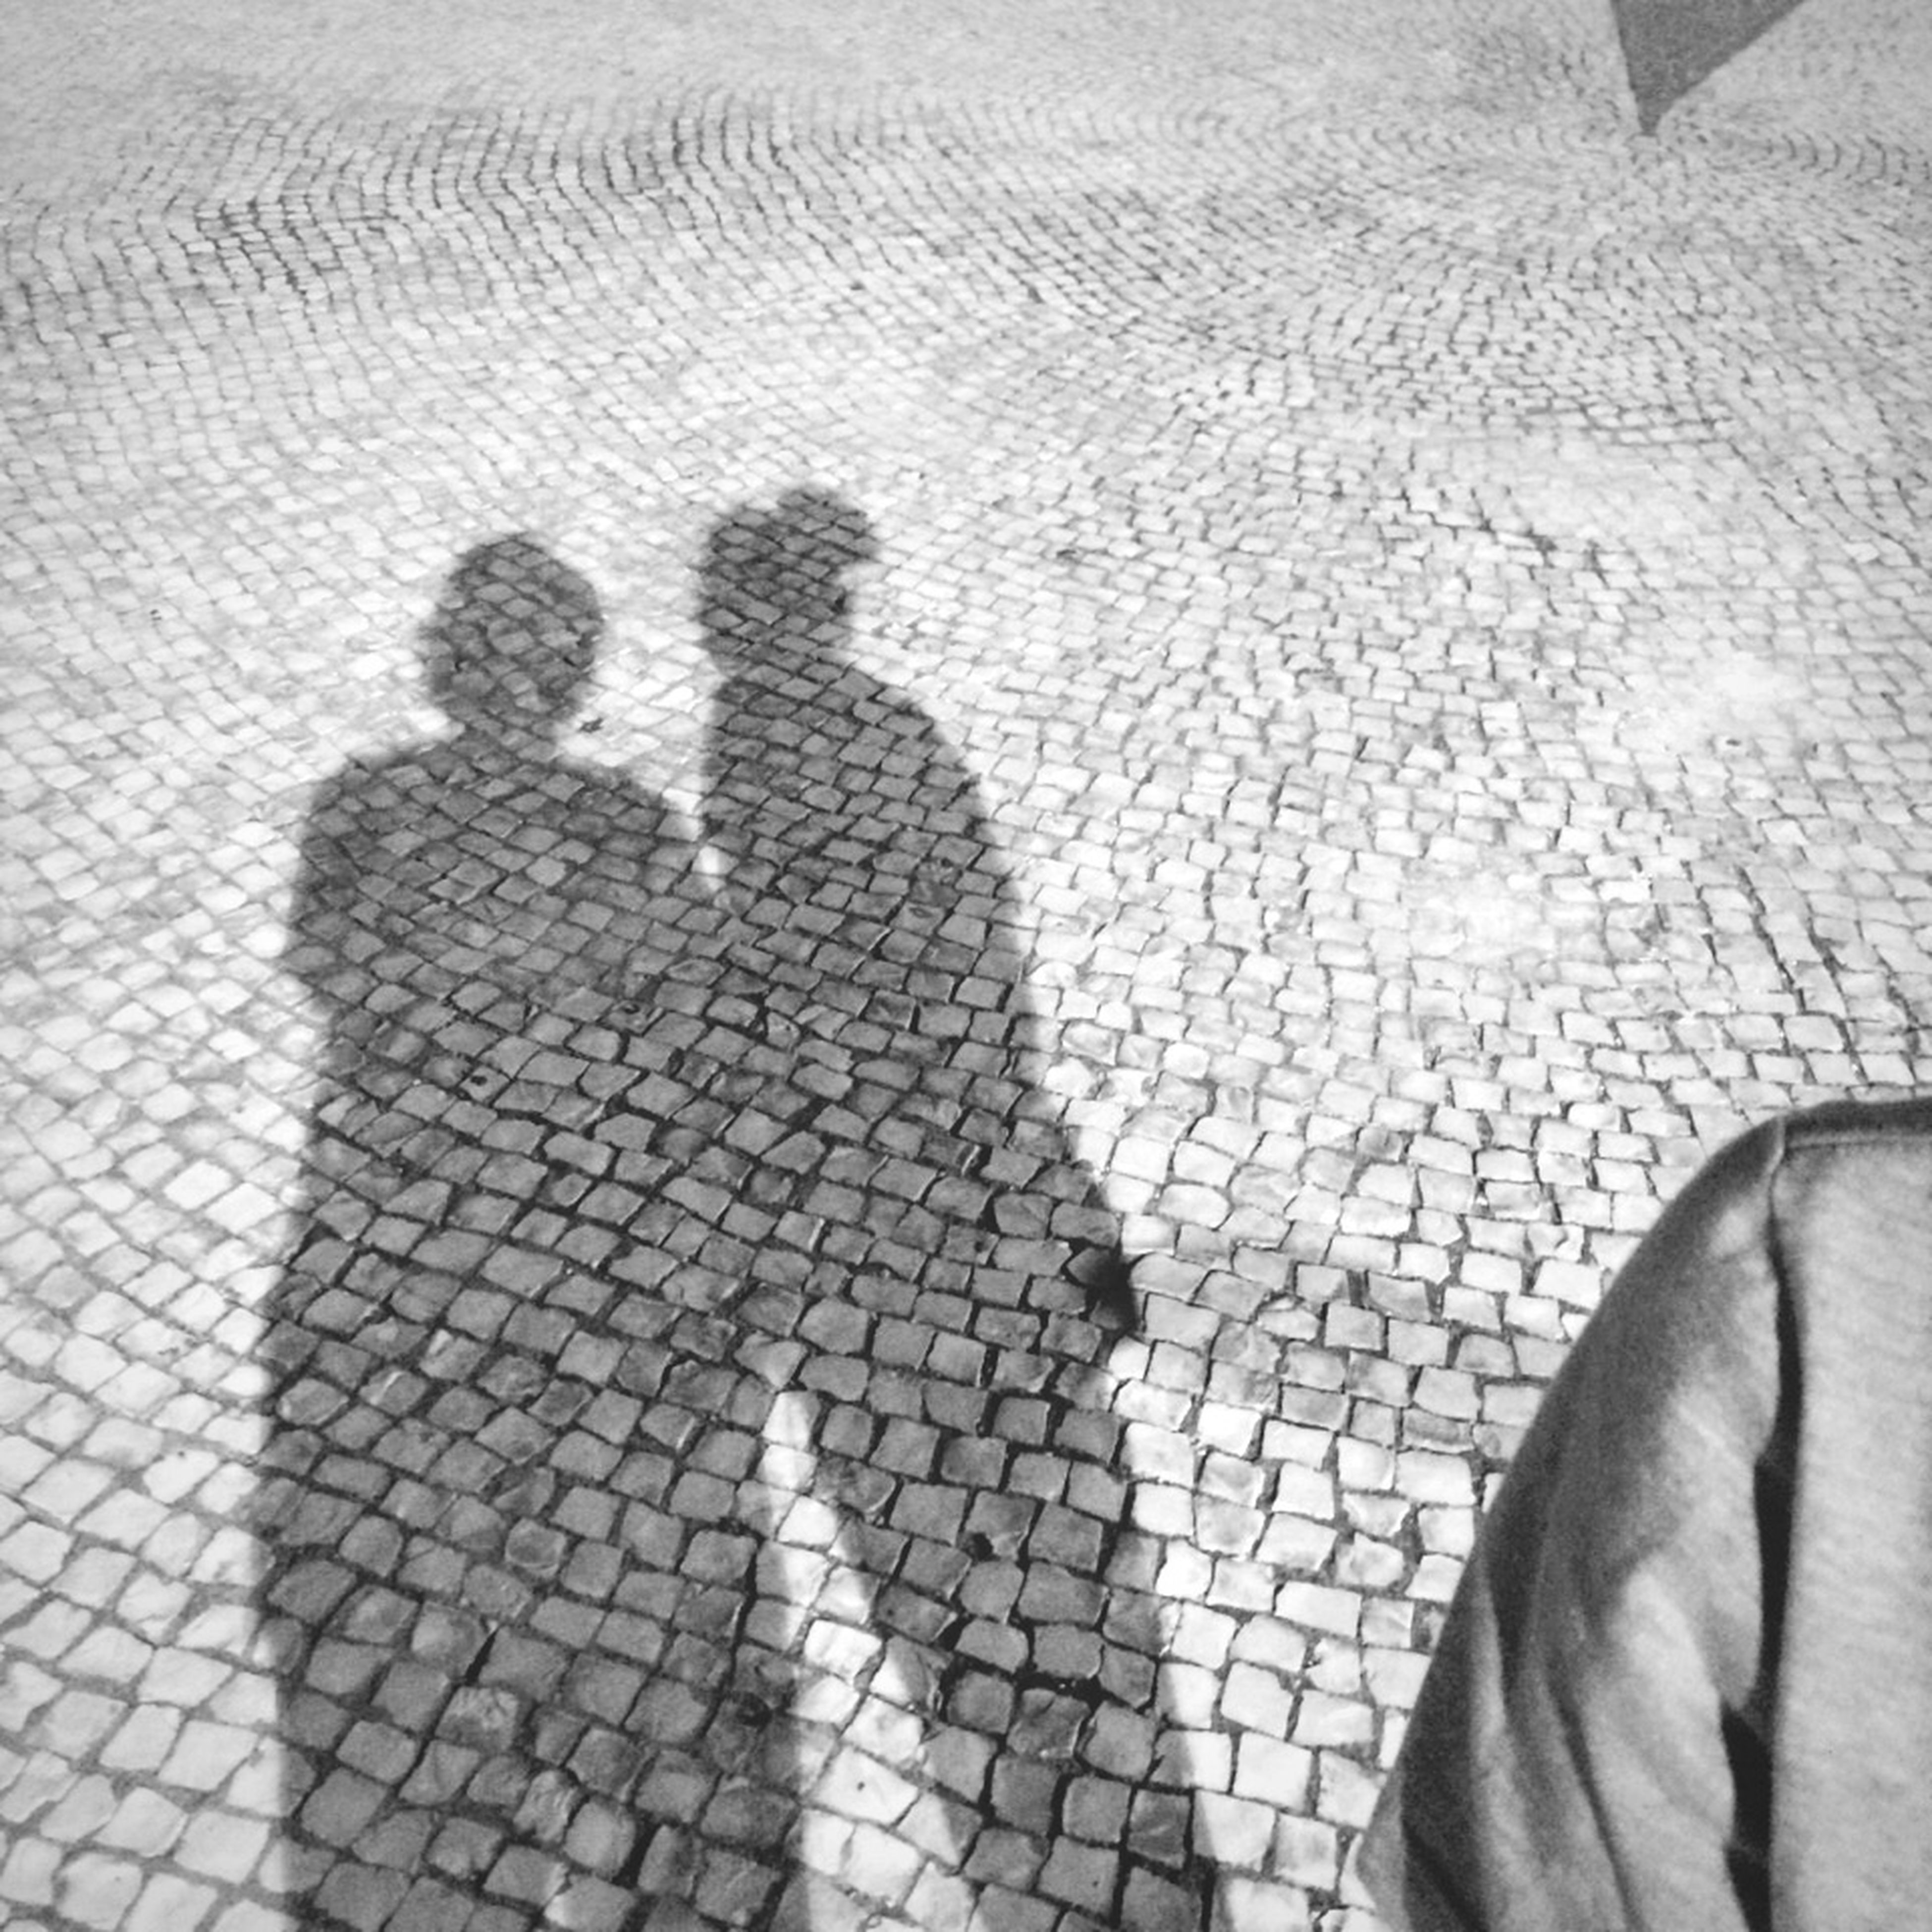 shadow, men, focus on shadow, high angle view, lifestyles, unrecognizable person, togetherness, leisure activity, street, cobblestone, sunlight, bonding, day, love, outdoors, standing, pattern